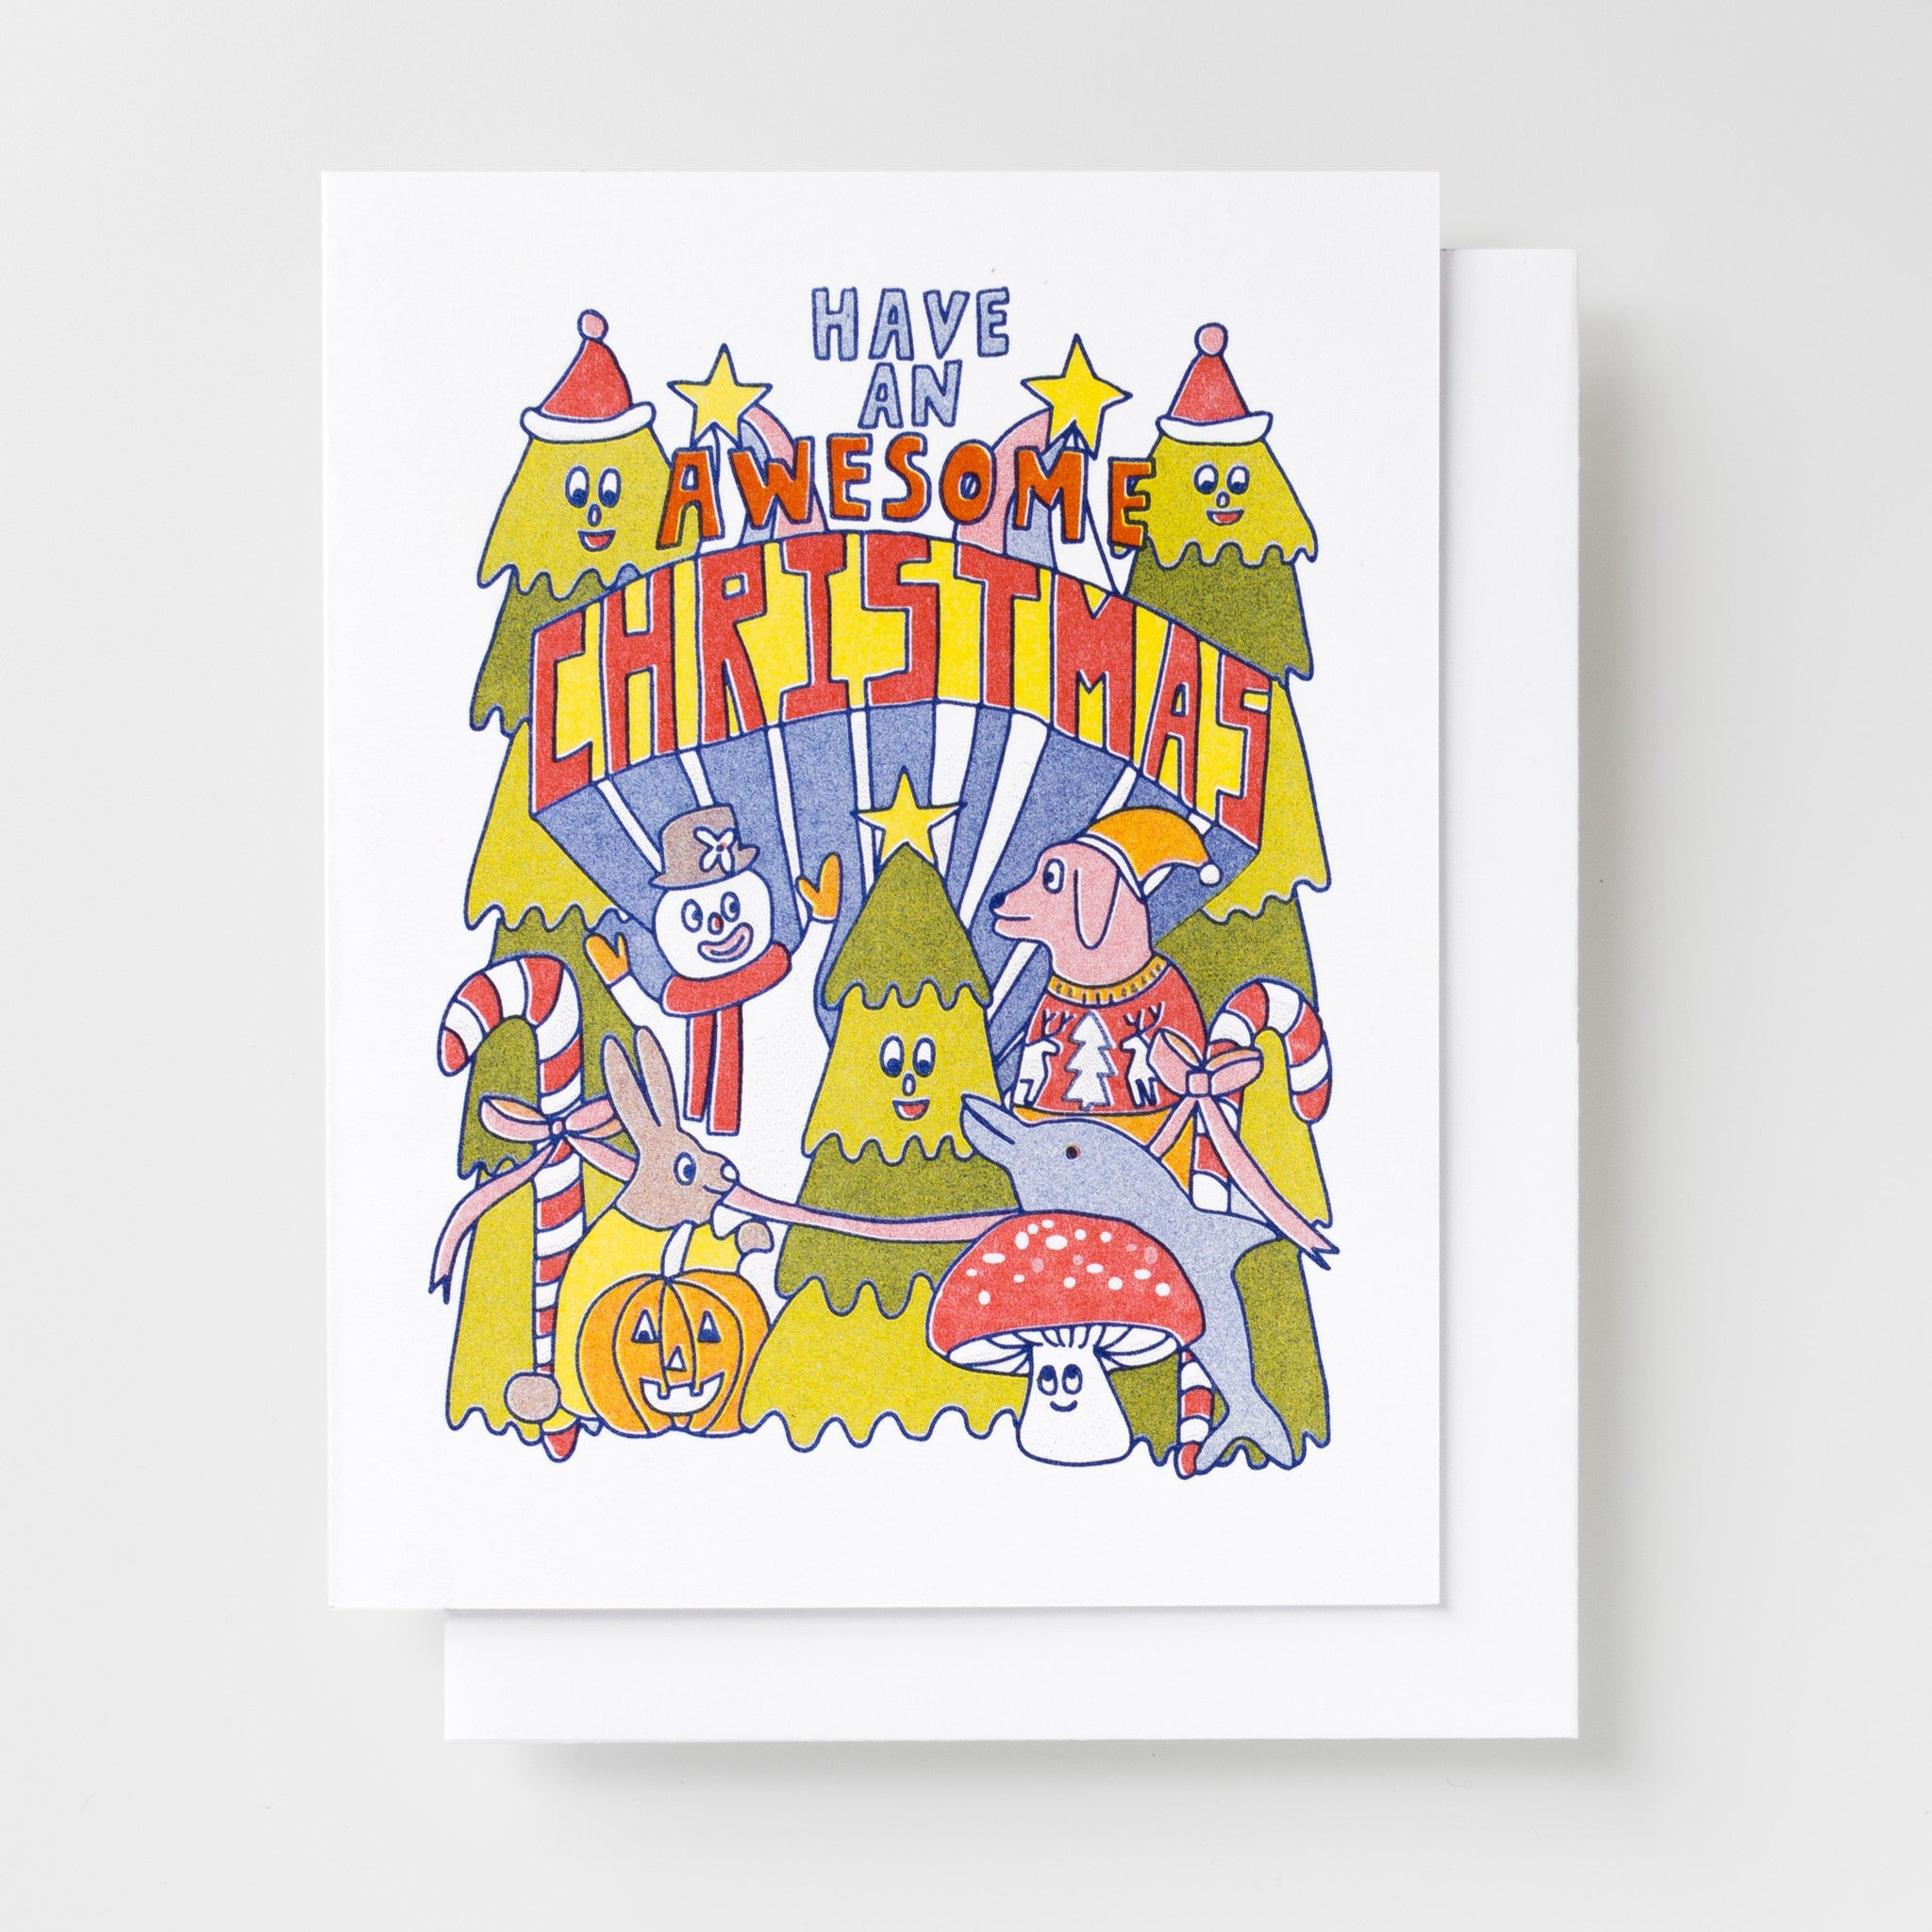 Awesome Christmas - Risograph Card